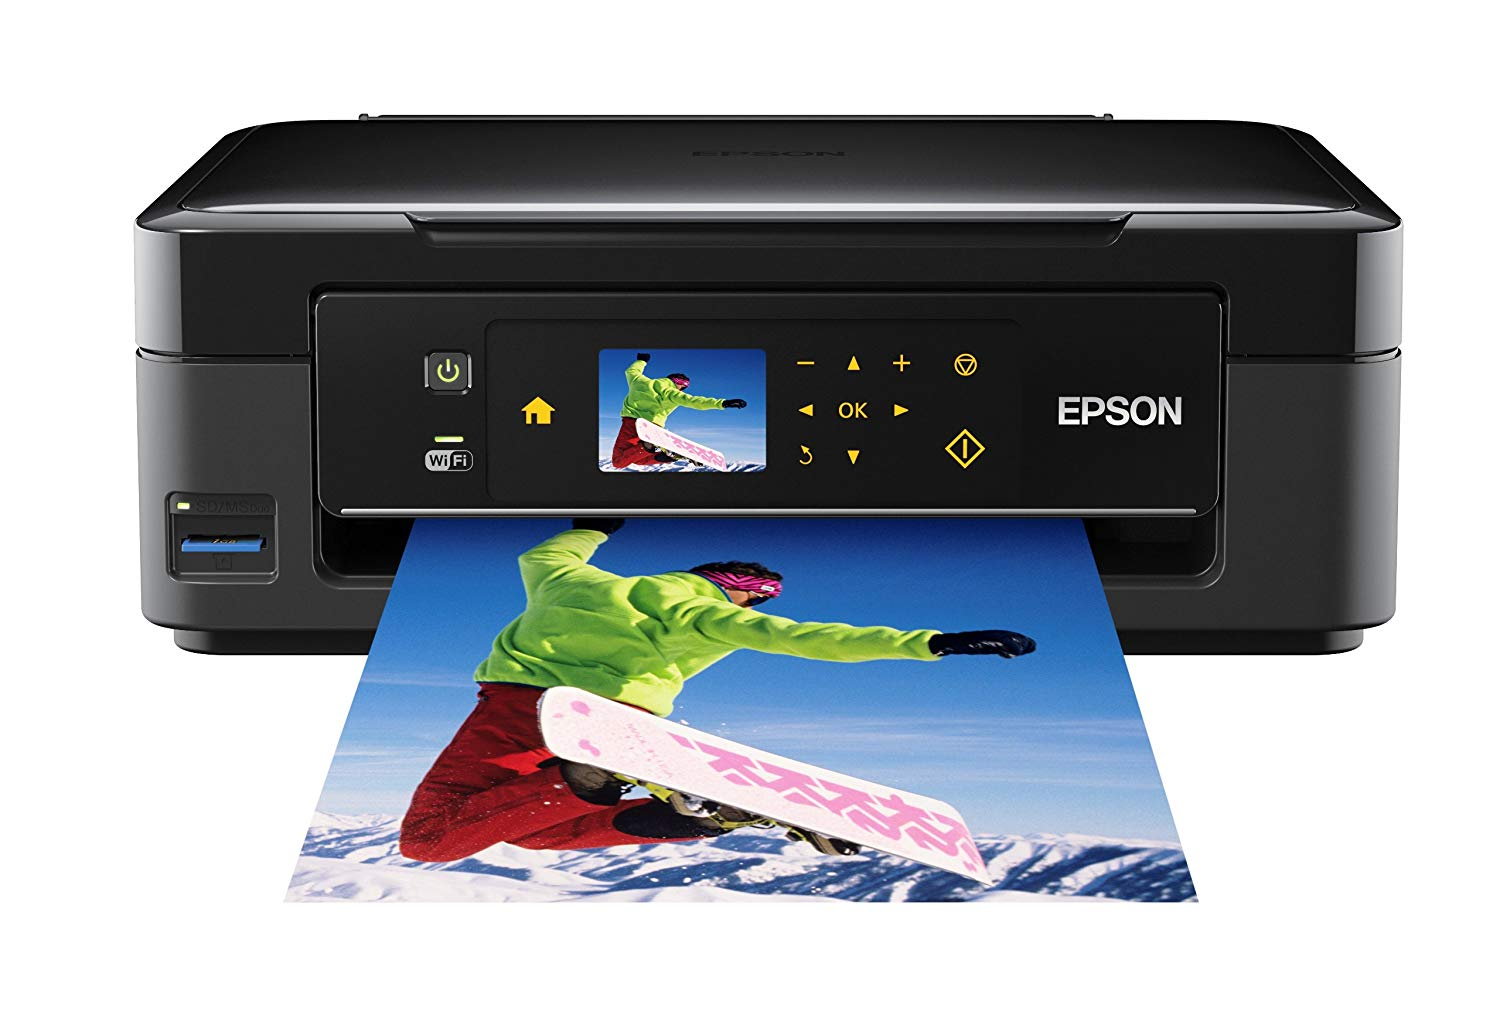 7 EPSON GRATUIT WINDOWS TÉLÉCHARGER 32 DRIVER SX218 BITS